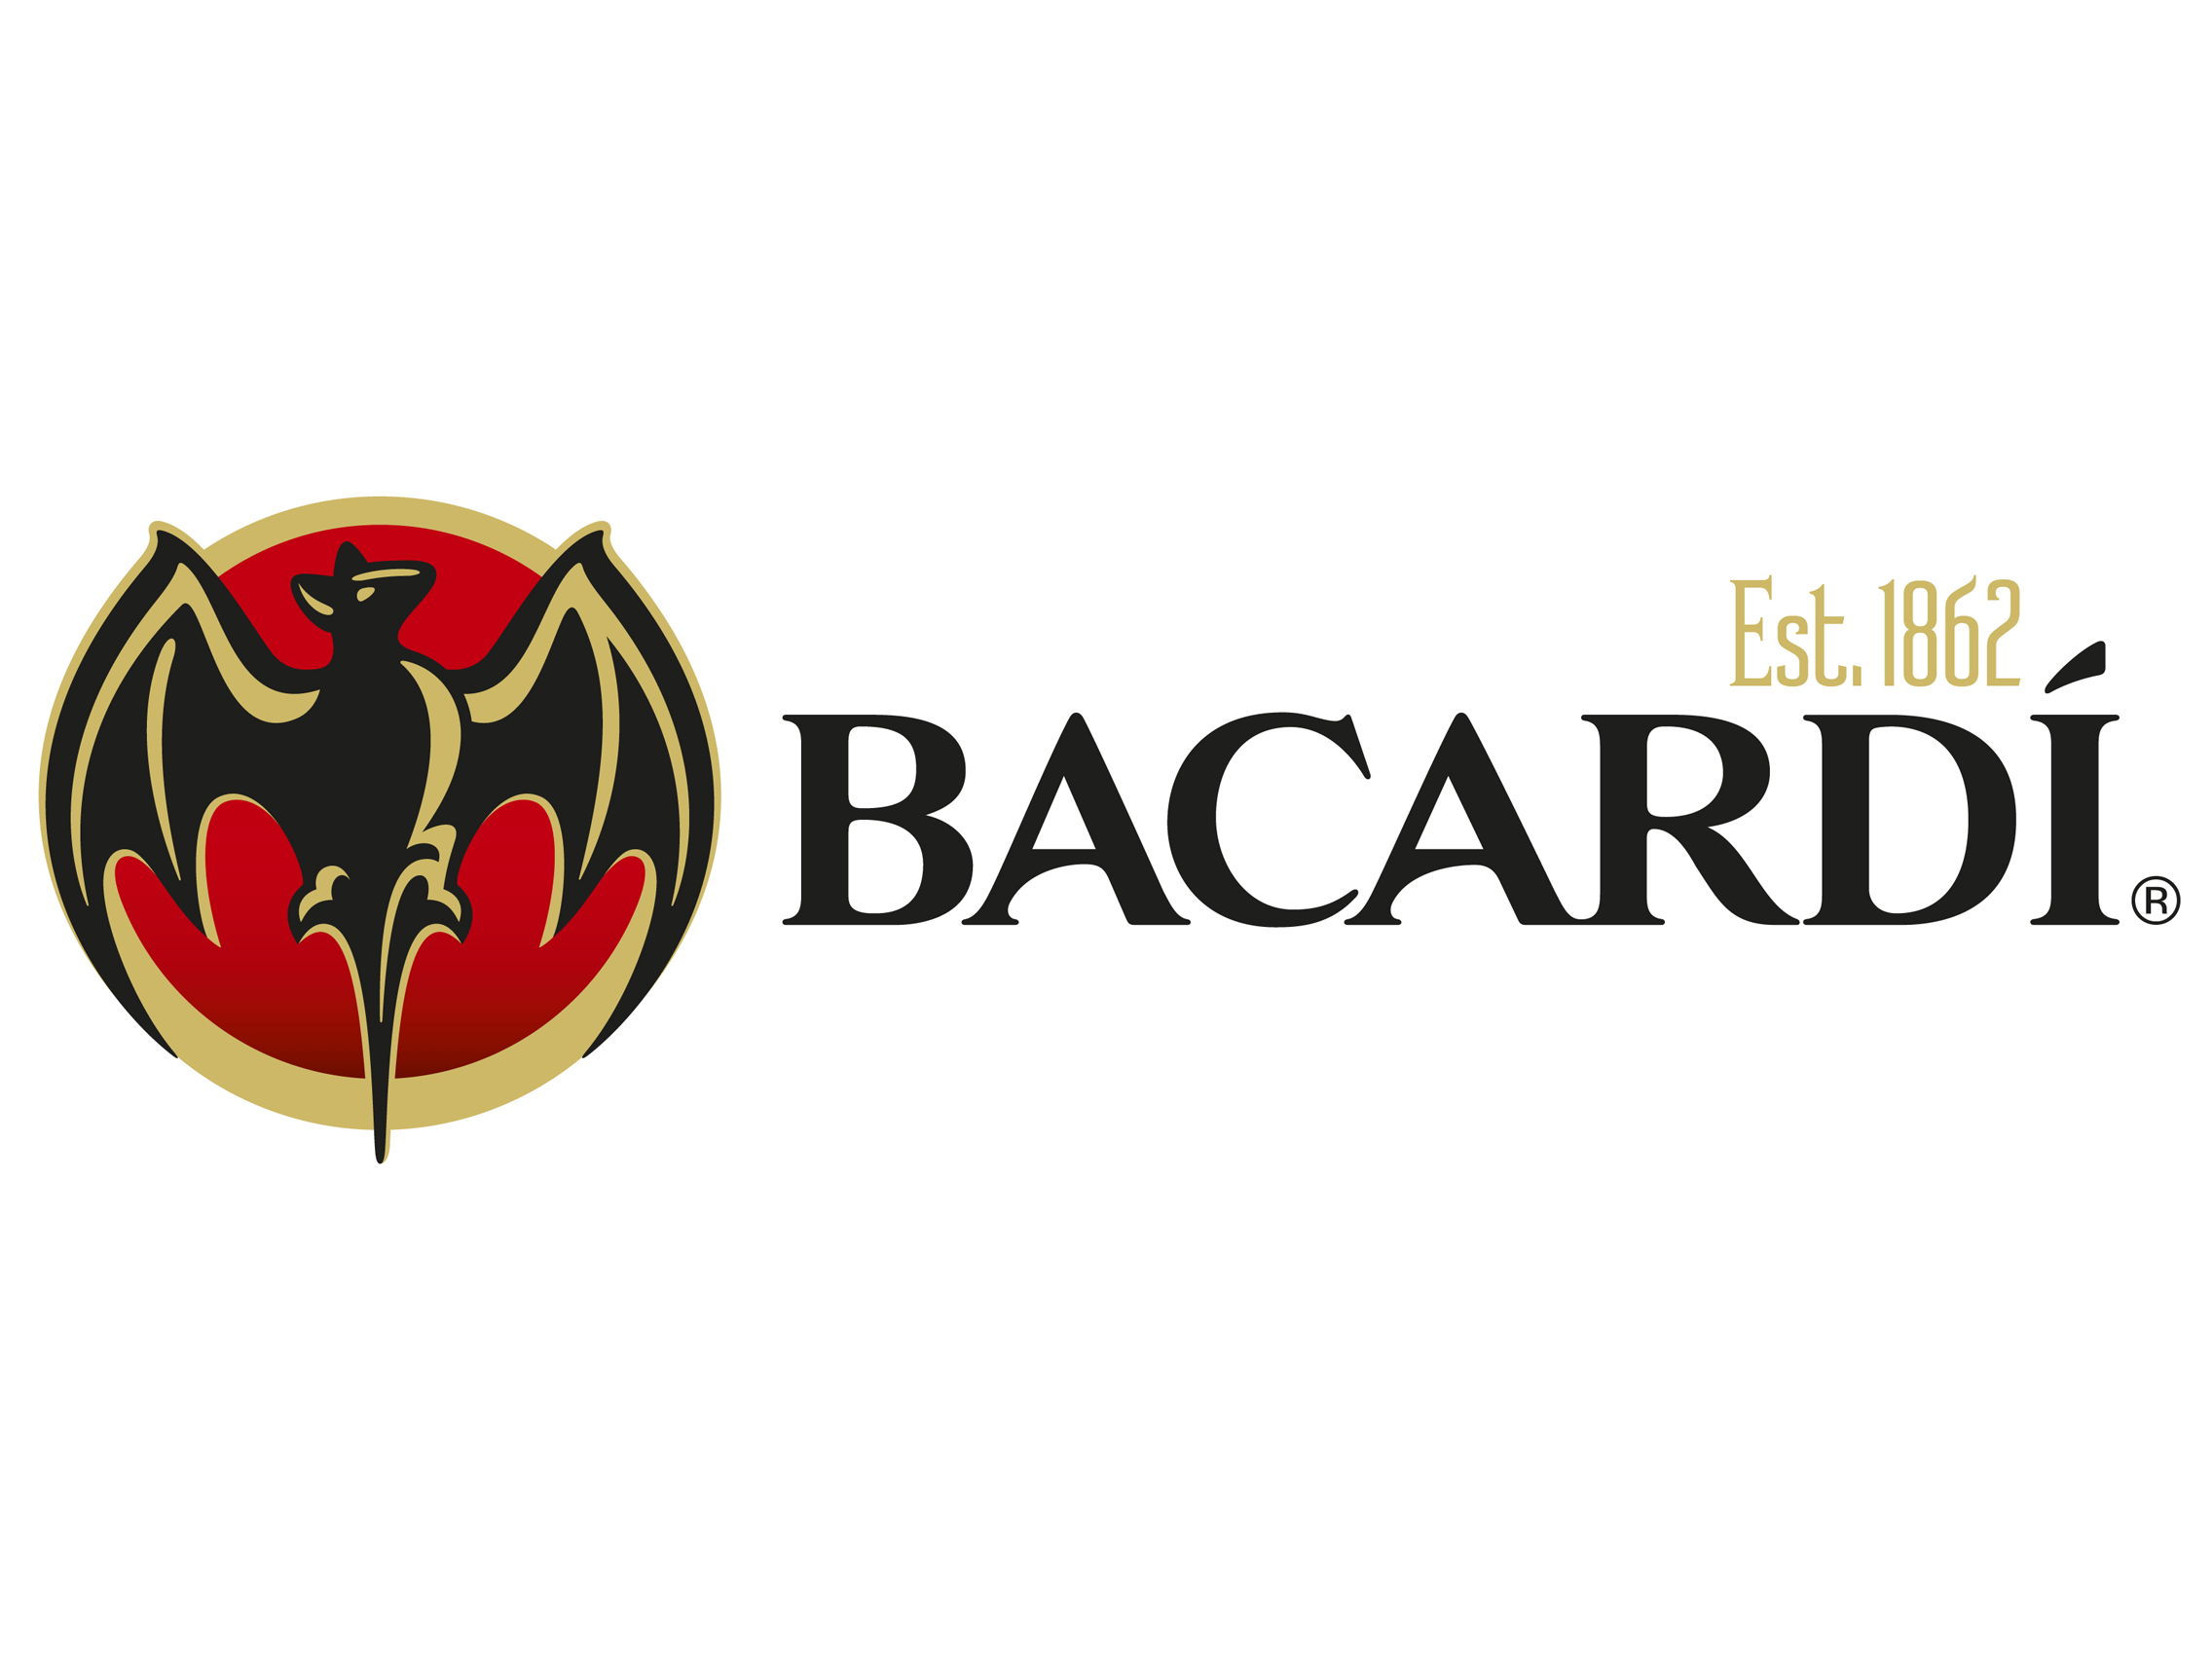 Filename: Bacardi_logo-5.png - Bacardi Limited Vector PNG